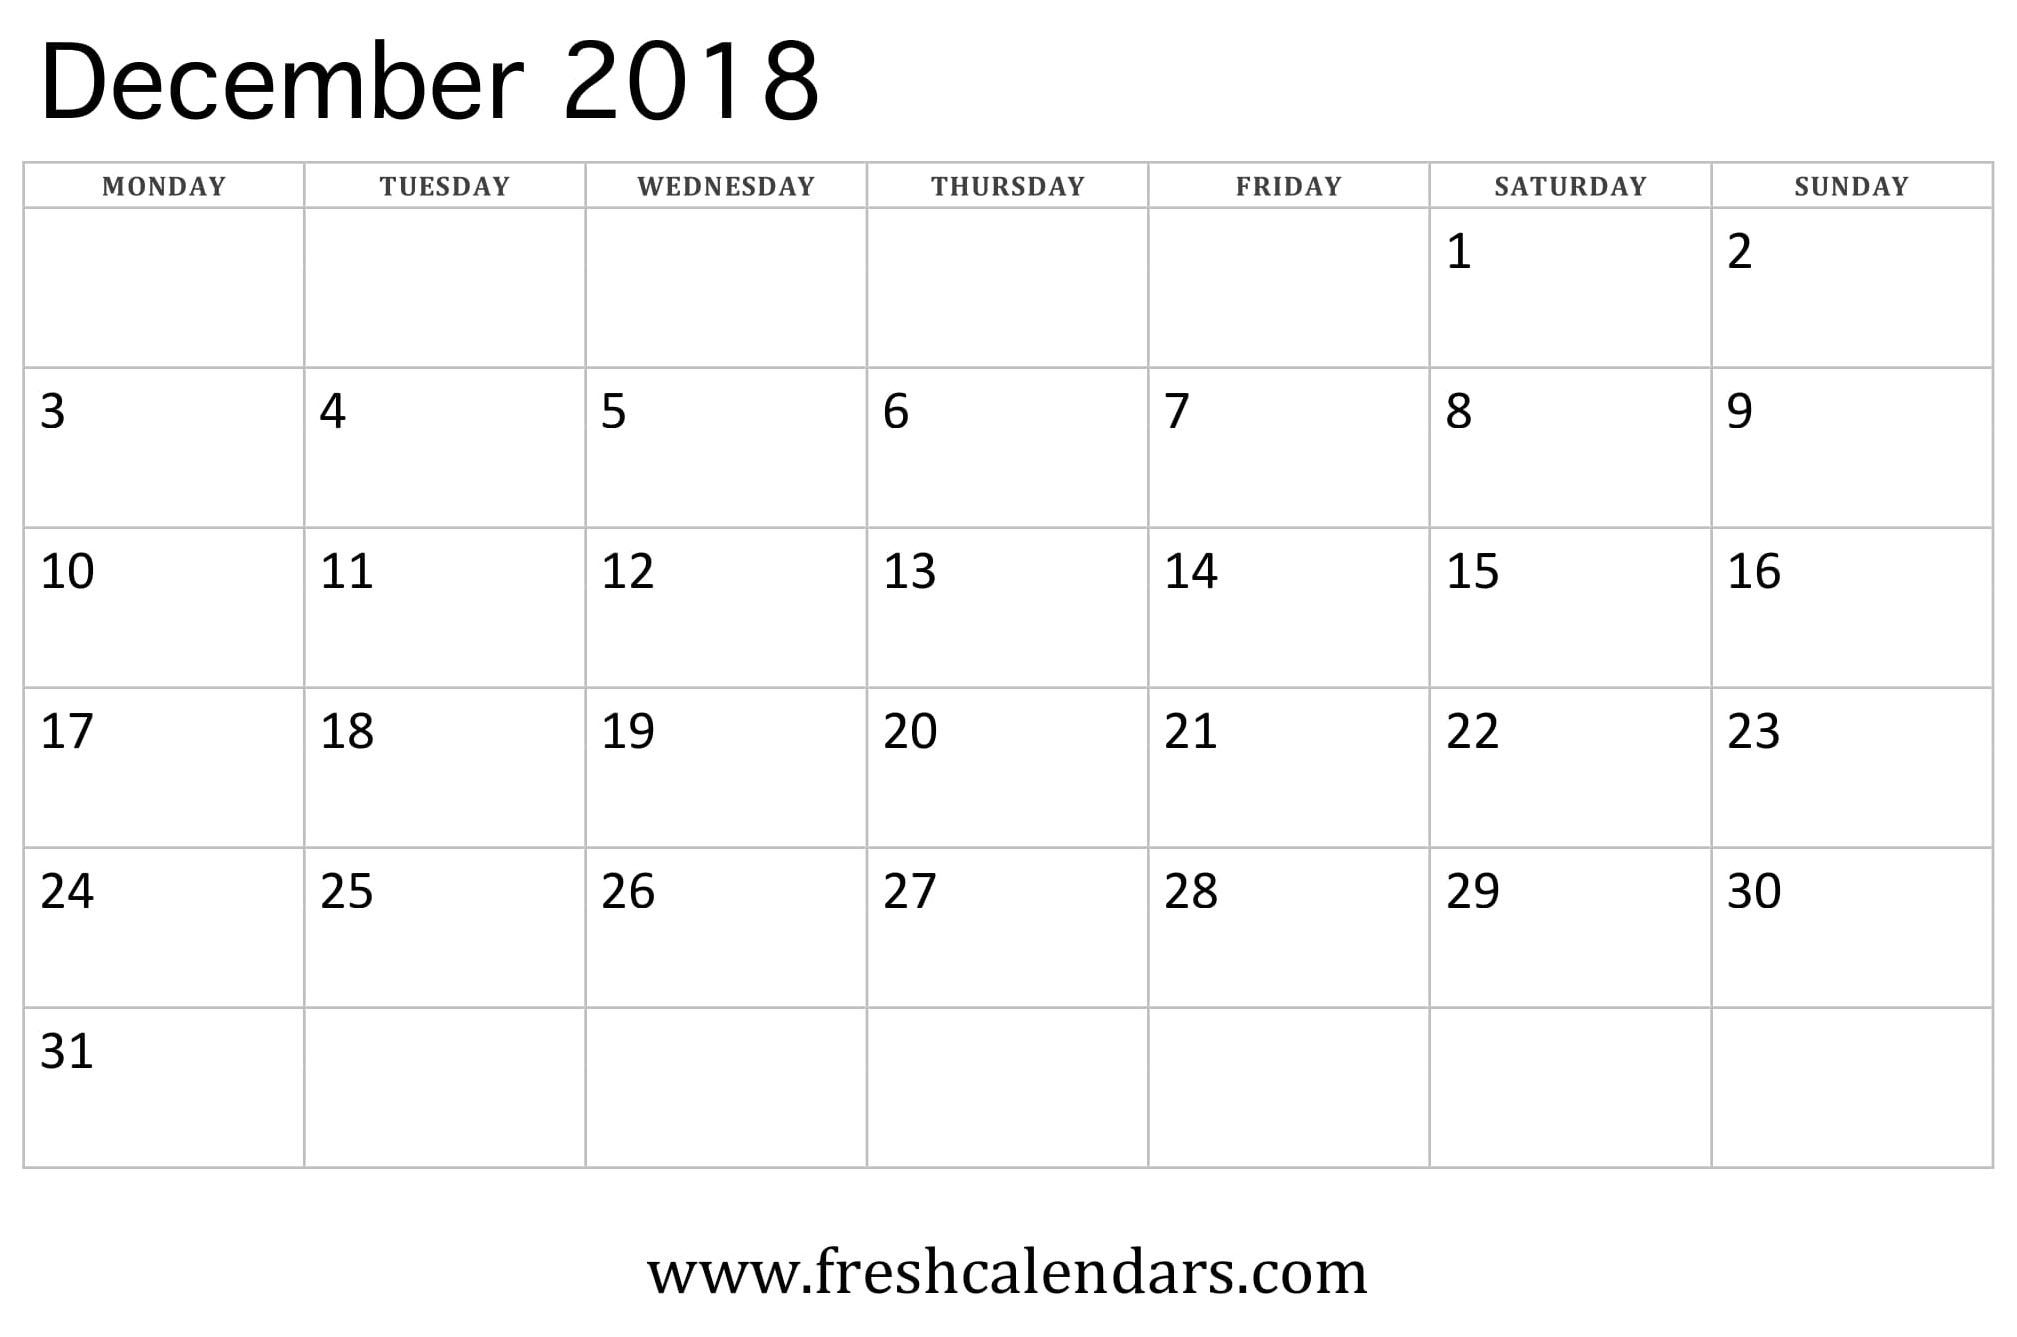 image regarding Printable December Calendar known as December 2018 Calendar Printable - Refreshing Calendars